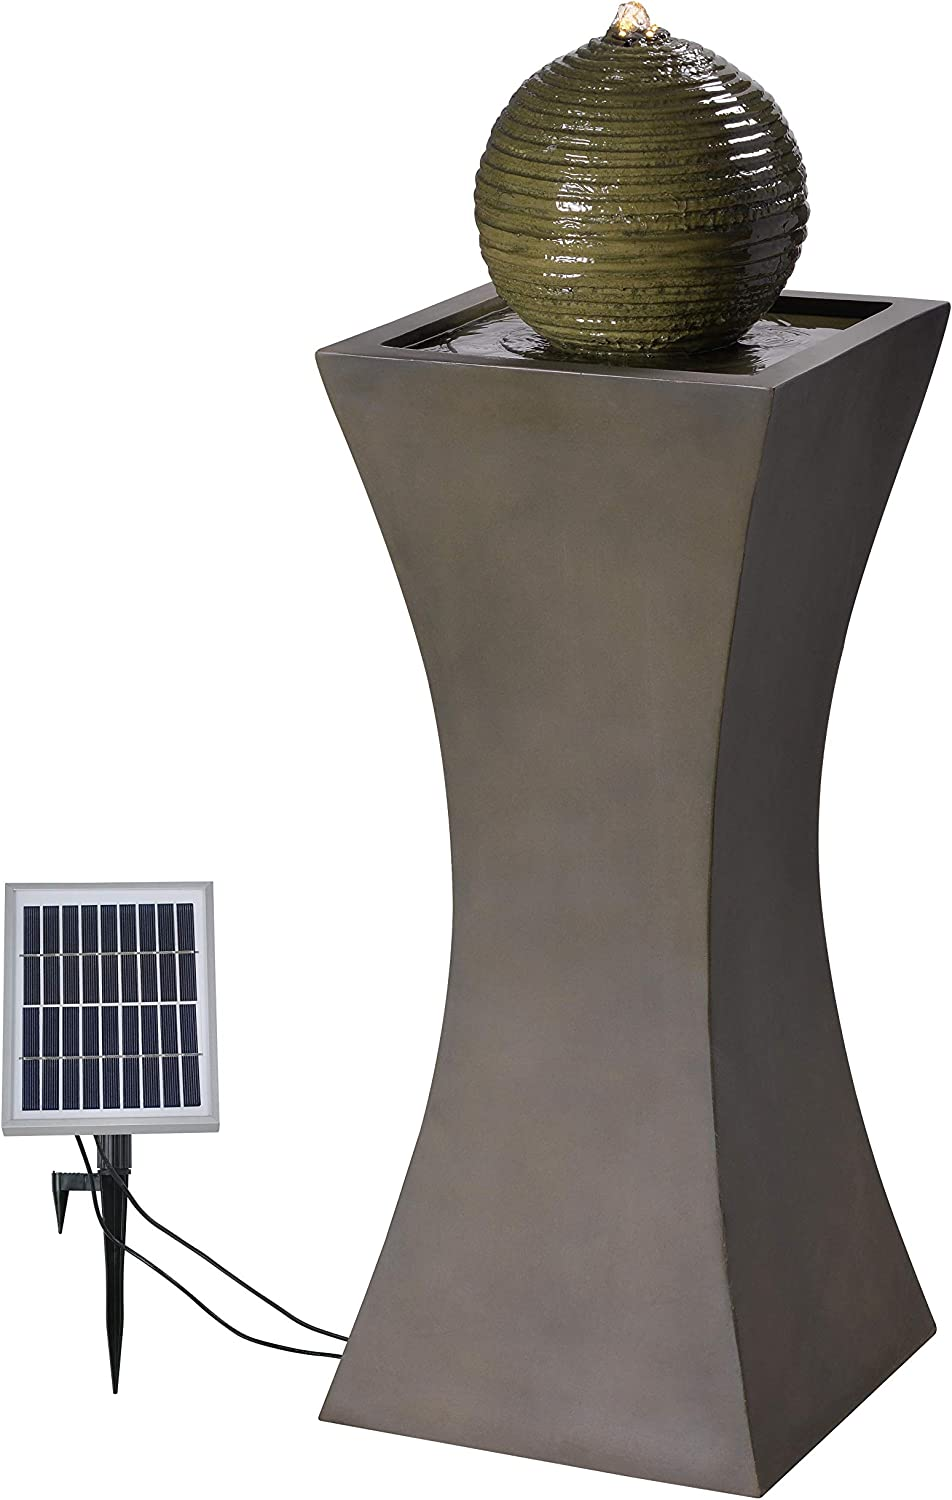 Kenroy Home Modern Outdoor Solar Floor Fountain ,39.5 Inch Height, 13.5 Inch Width, 13.5 Inch Ext. with Moss Stone Finish